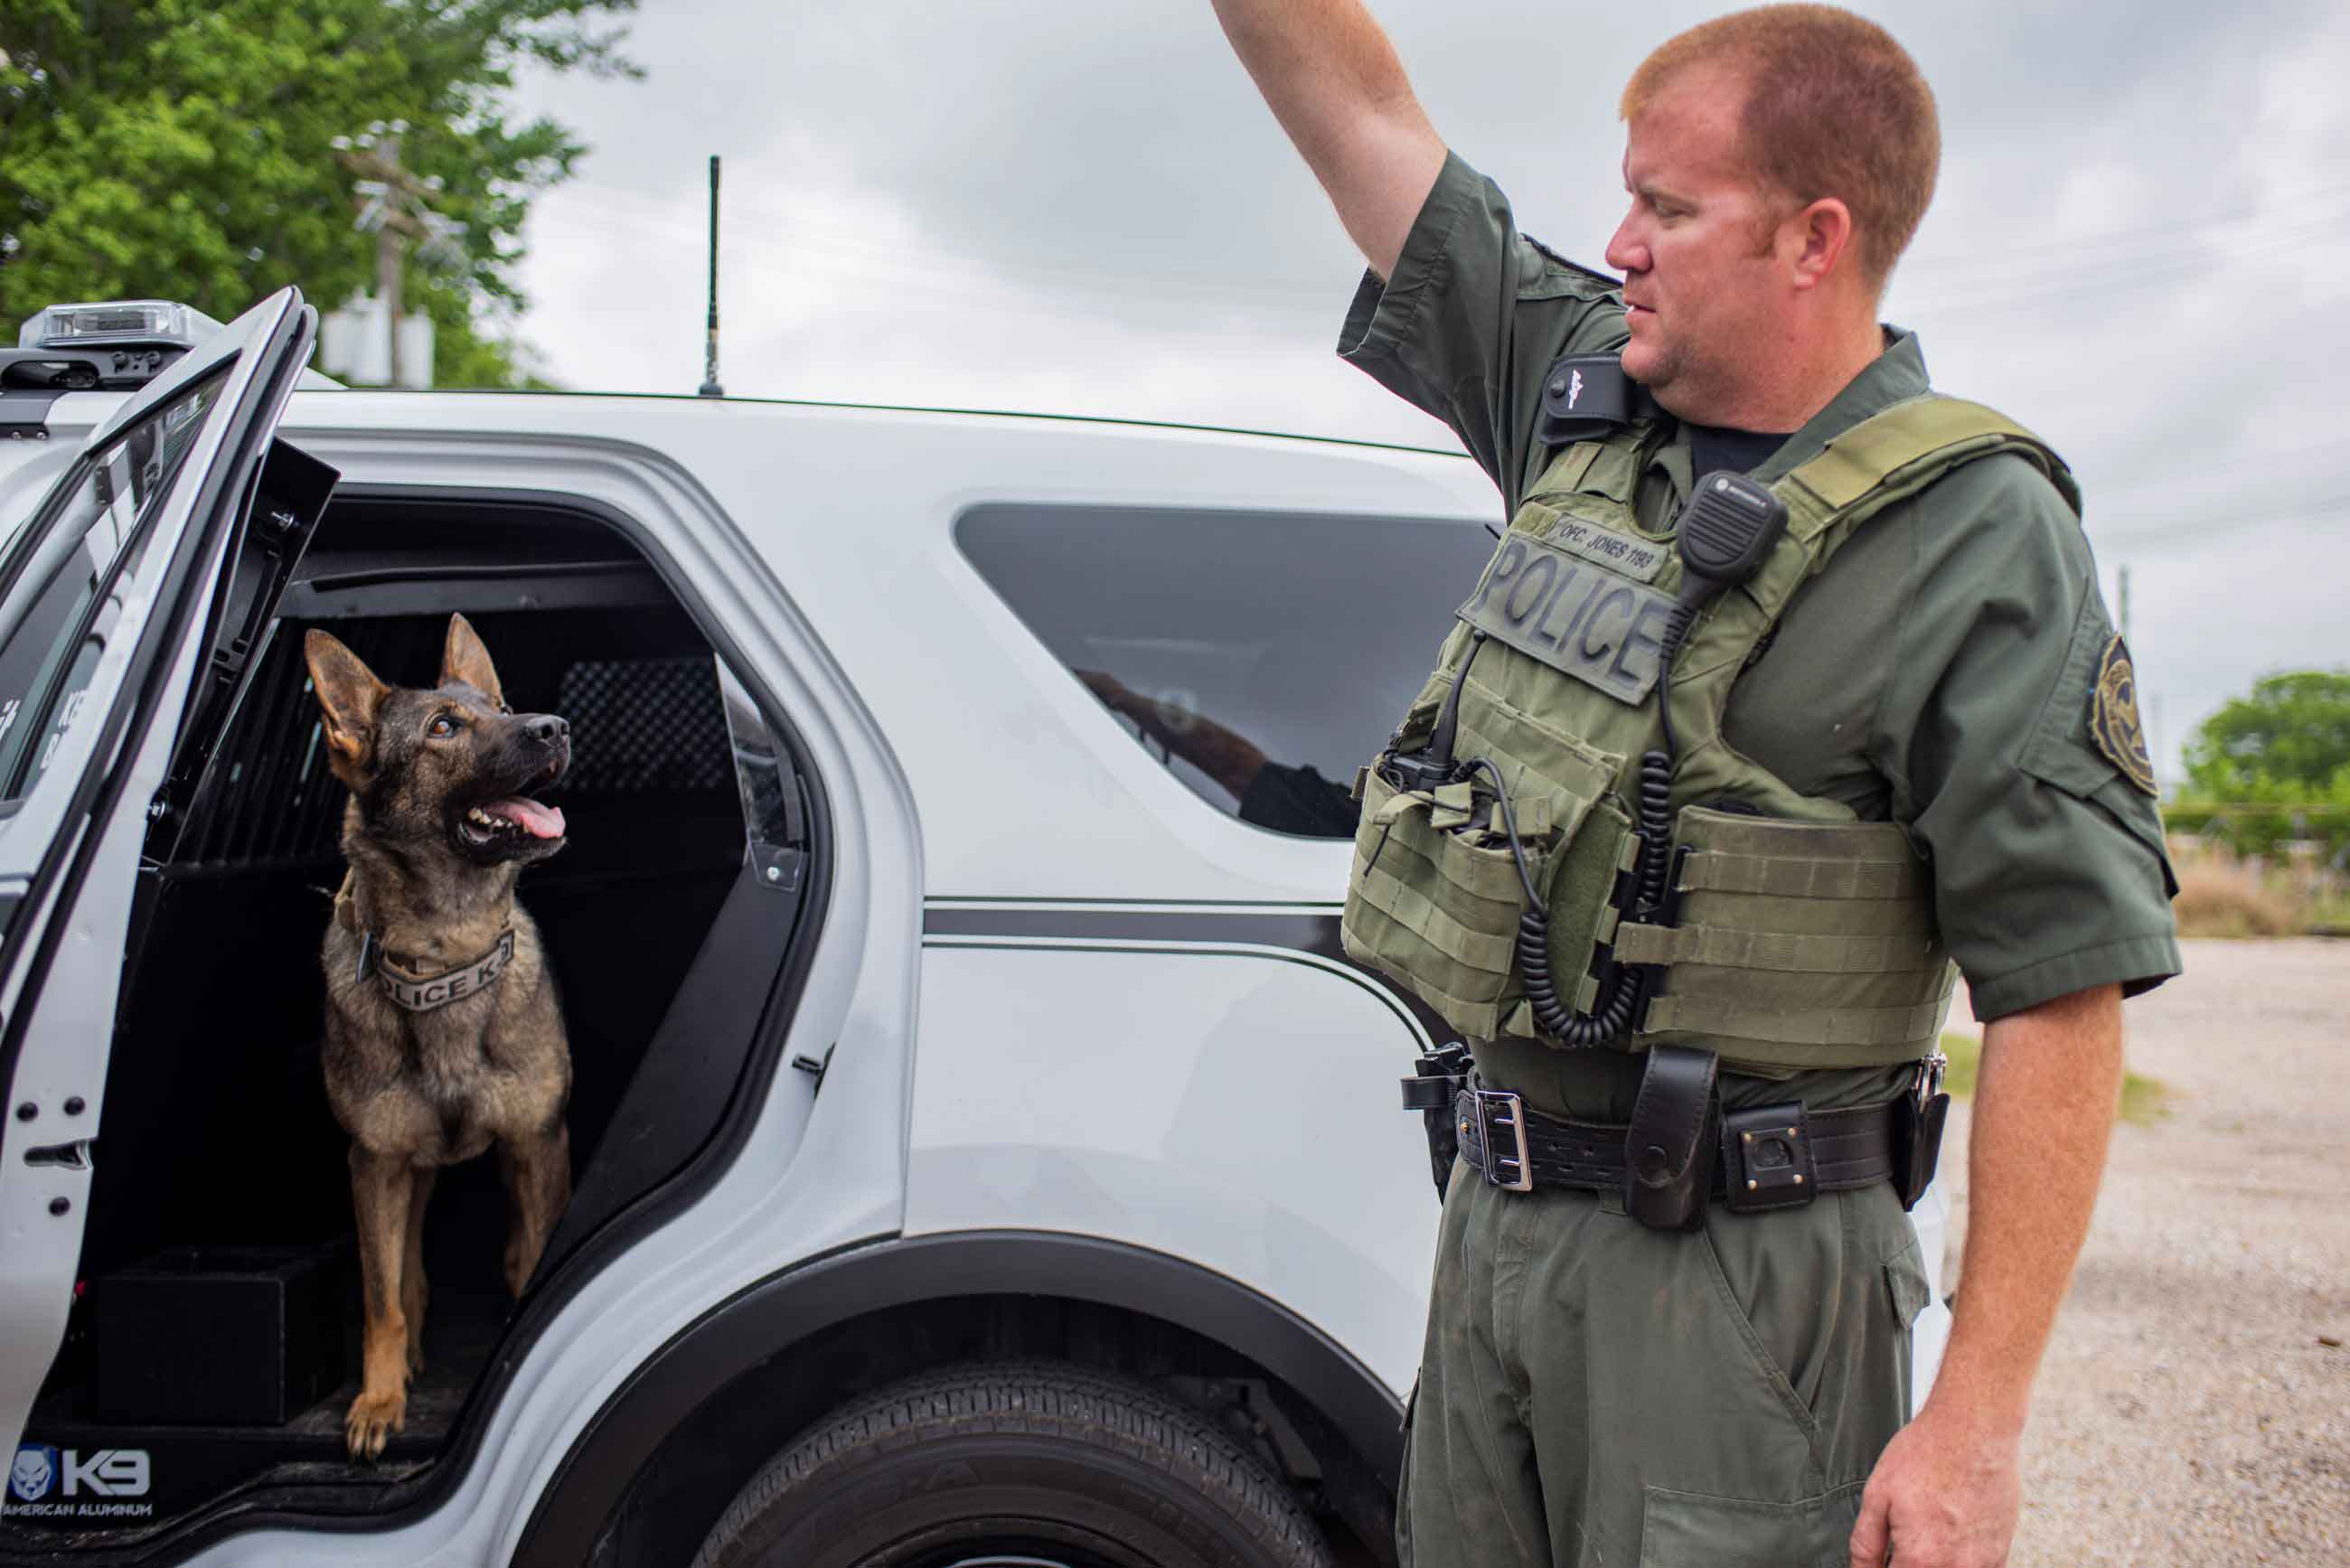 K9 unit with officer